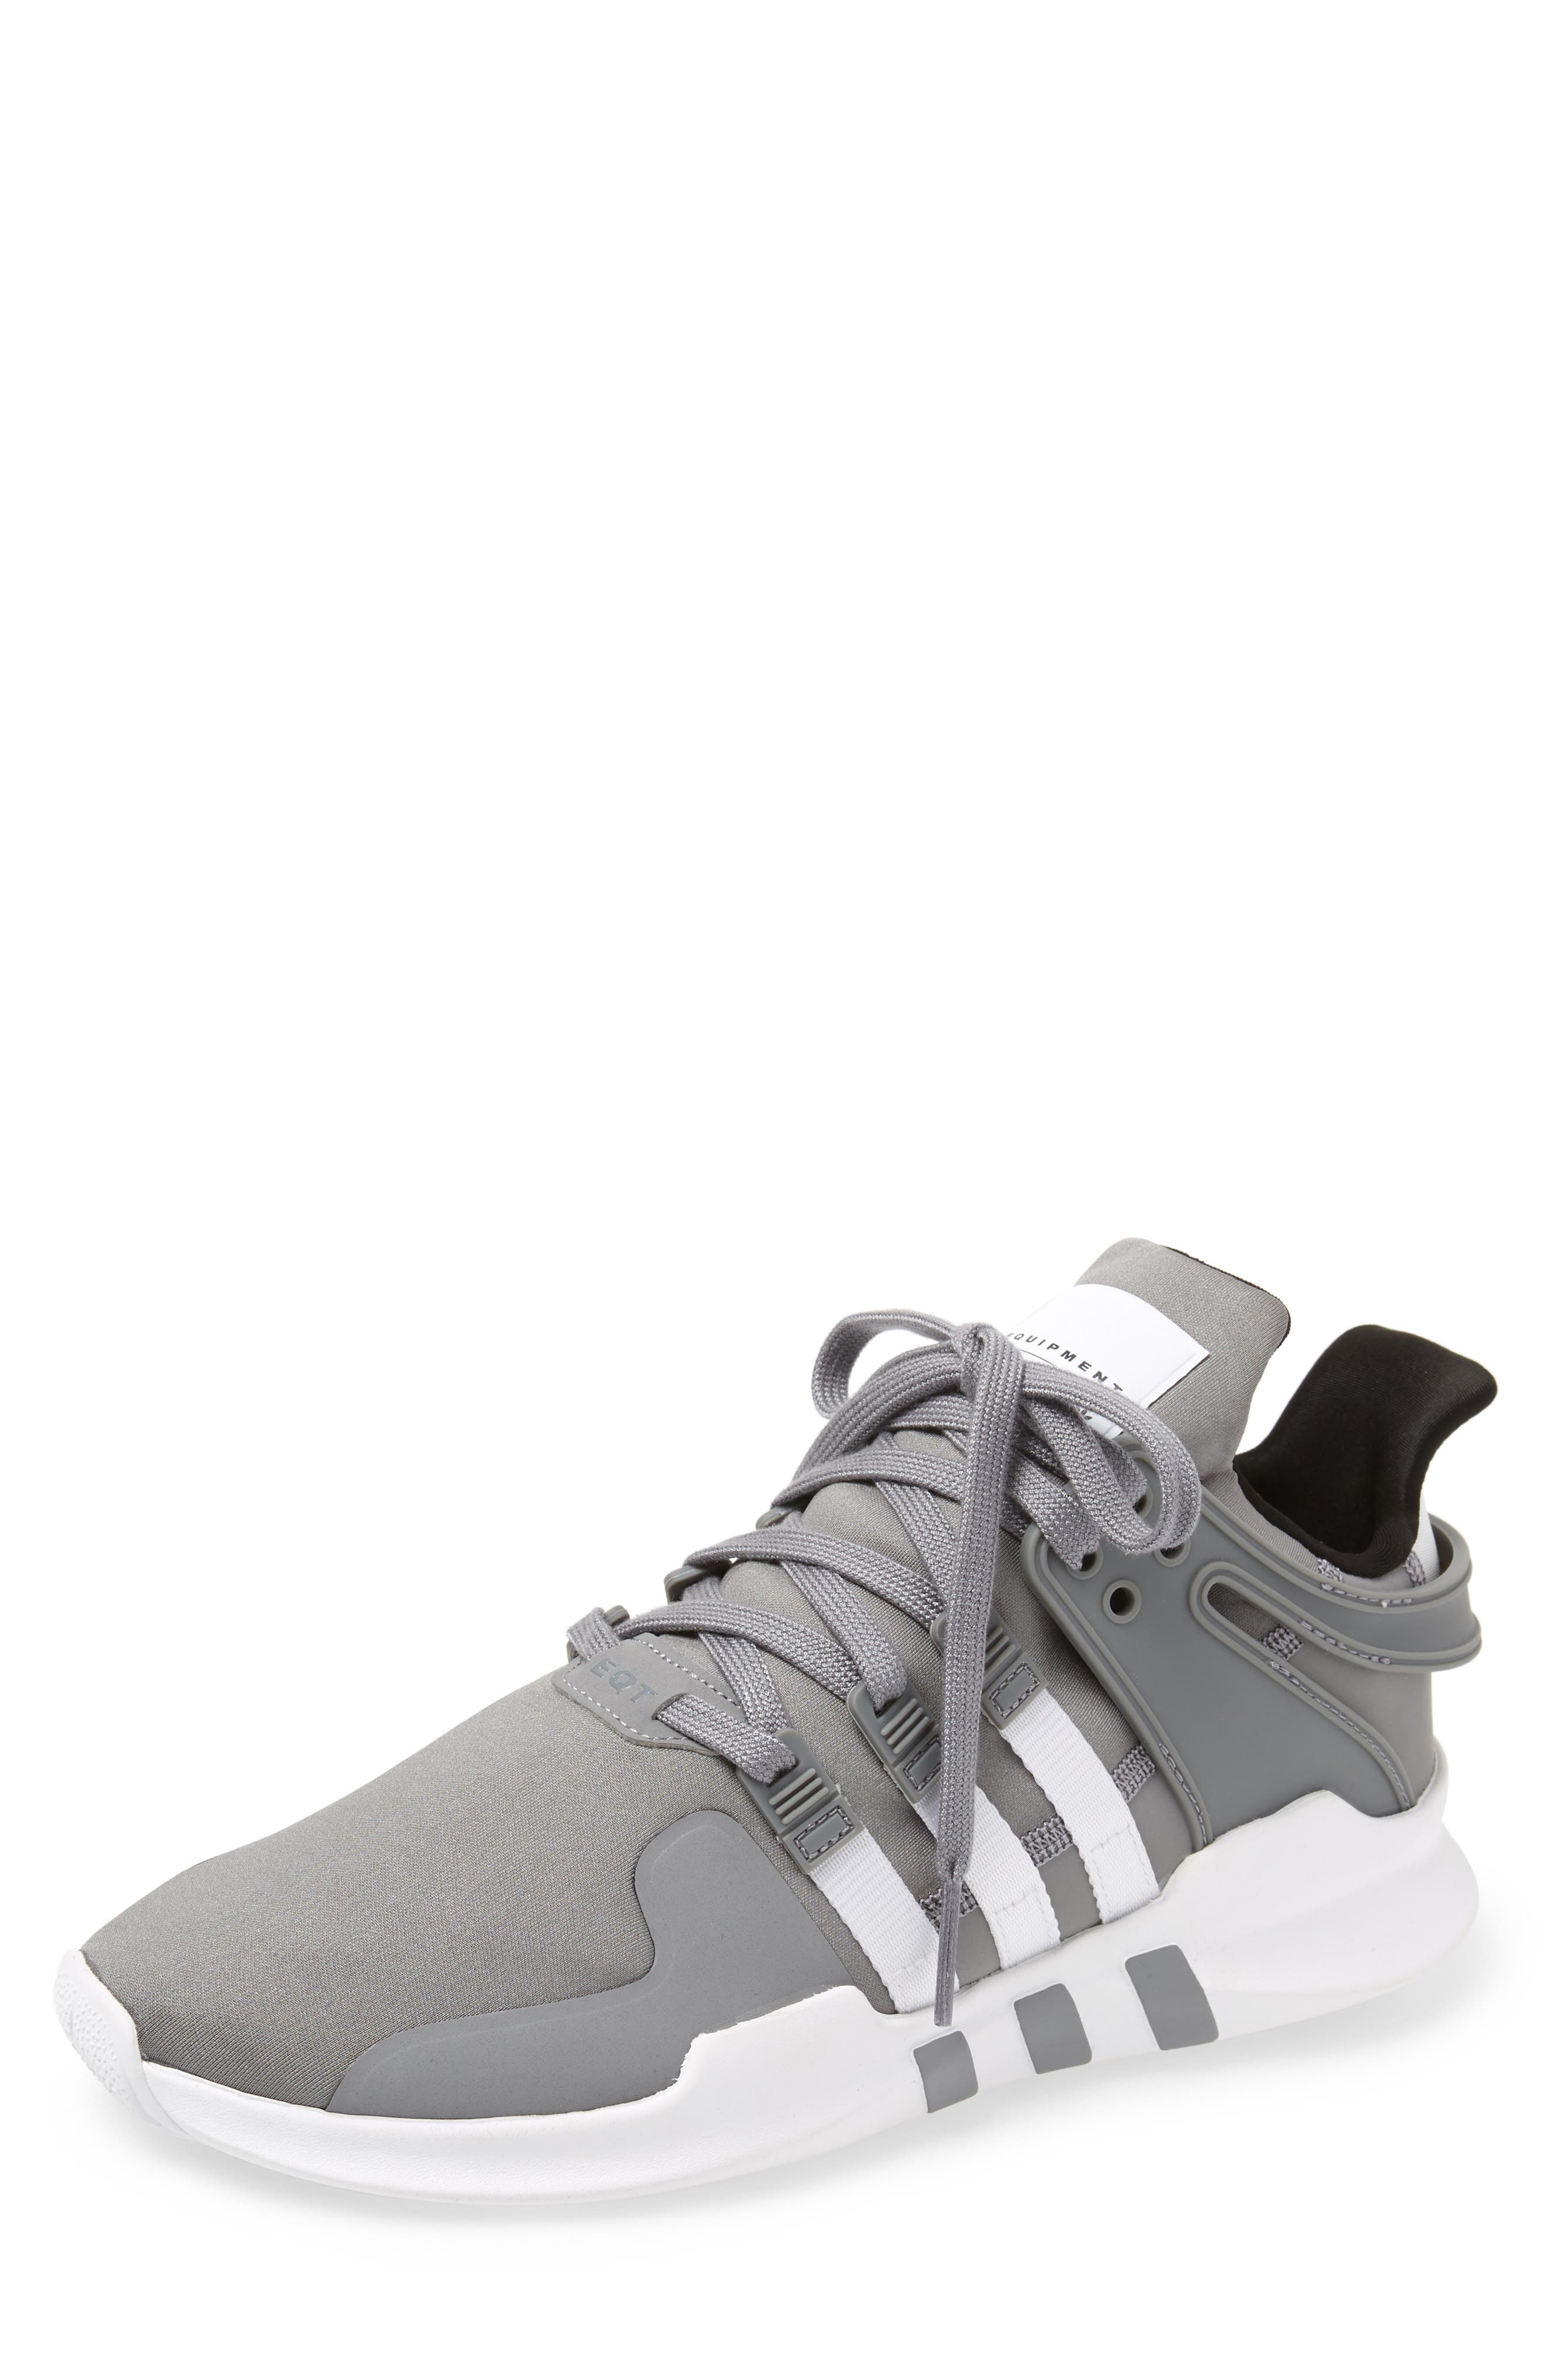 EQT Support Adv Sneaker,                             Main thumbnail 1, color,                             003